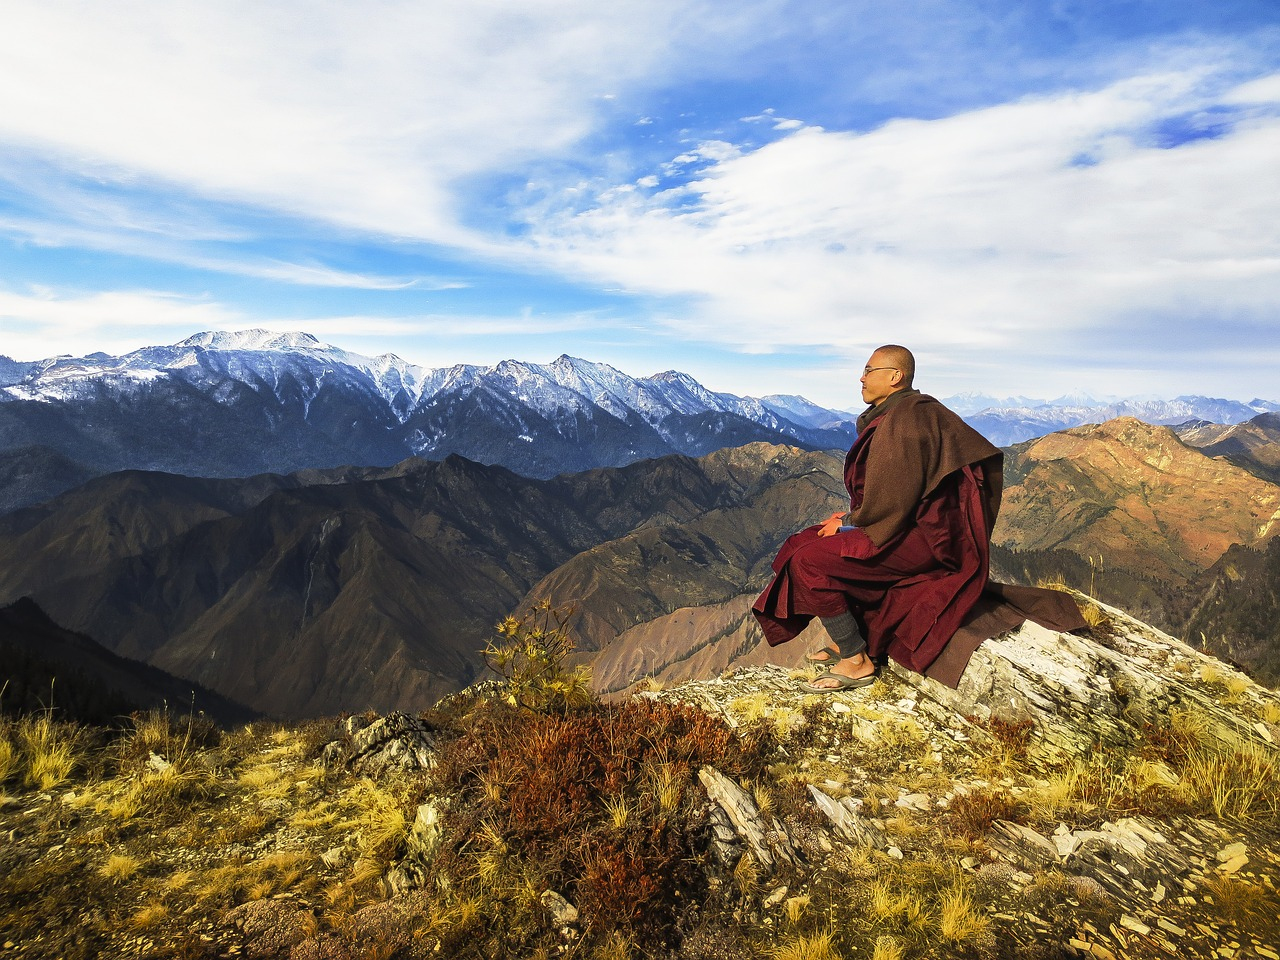 theravada buddhism,monk at mountain,monk at himalaya,bhikkhu,buddhism,buddhist,mountain,himalaya,landscape,nature,spiritual,peaceful,religious,free pictures, free photos, free images, royalty free, free illustrations, public domain